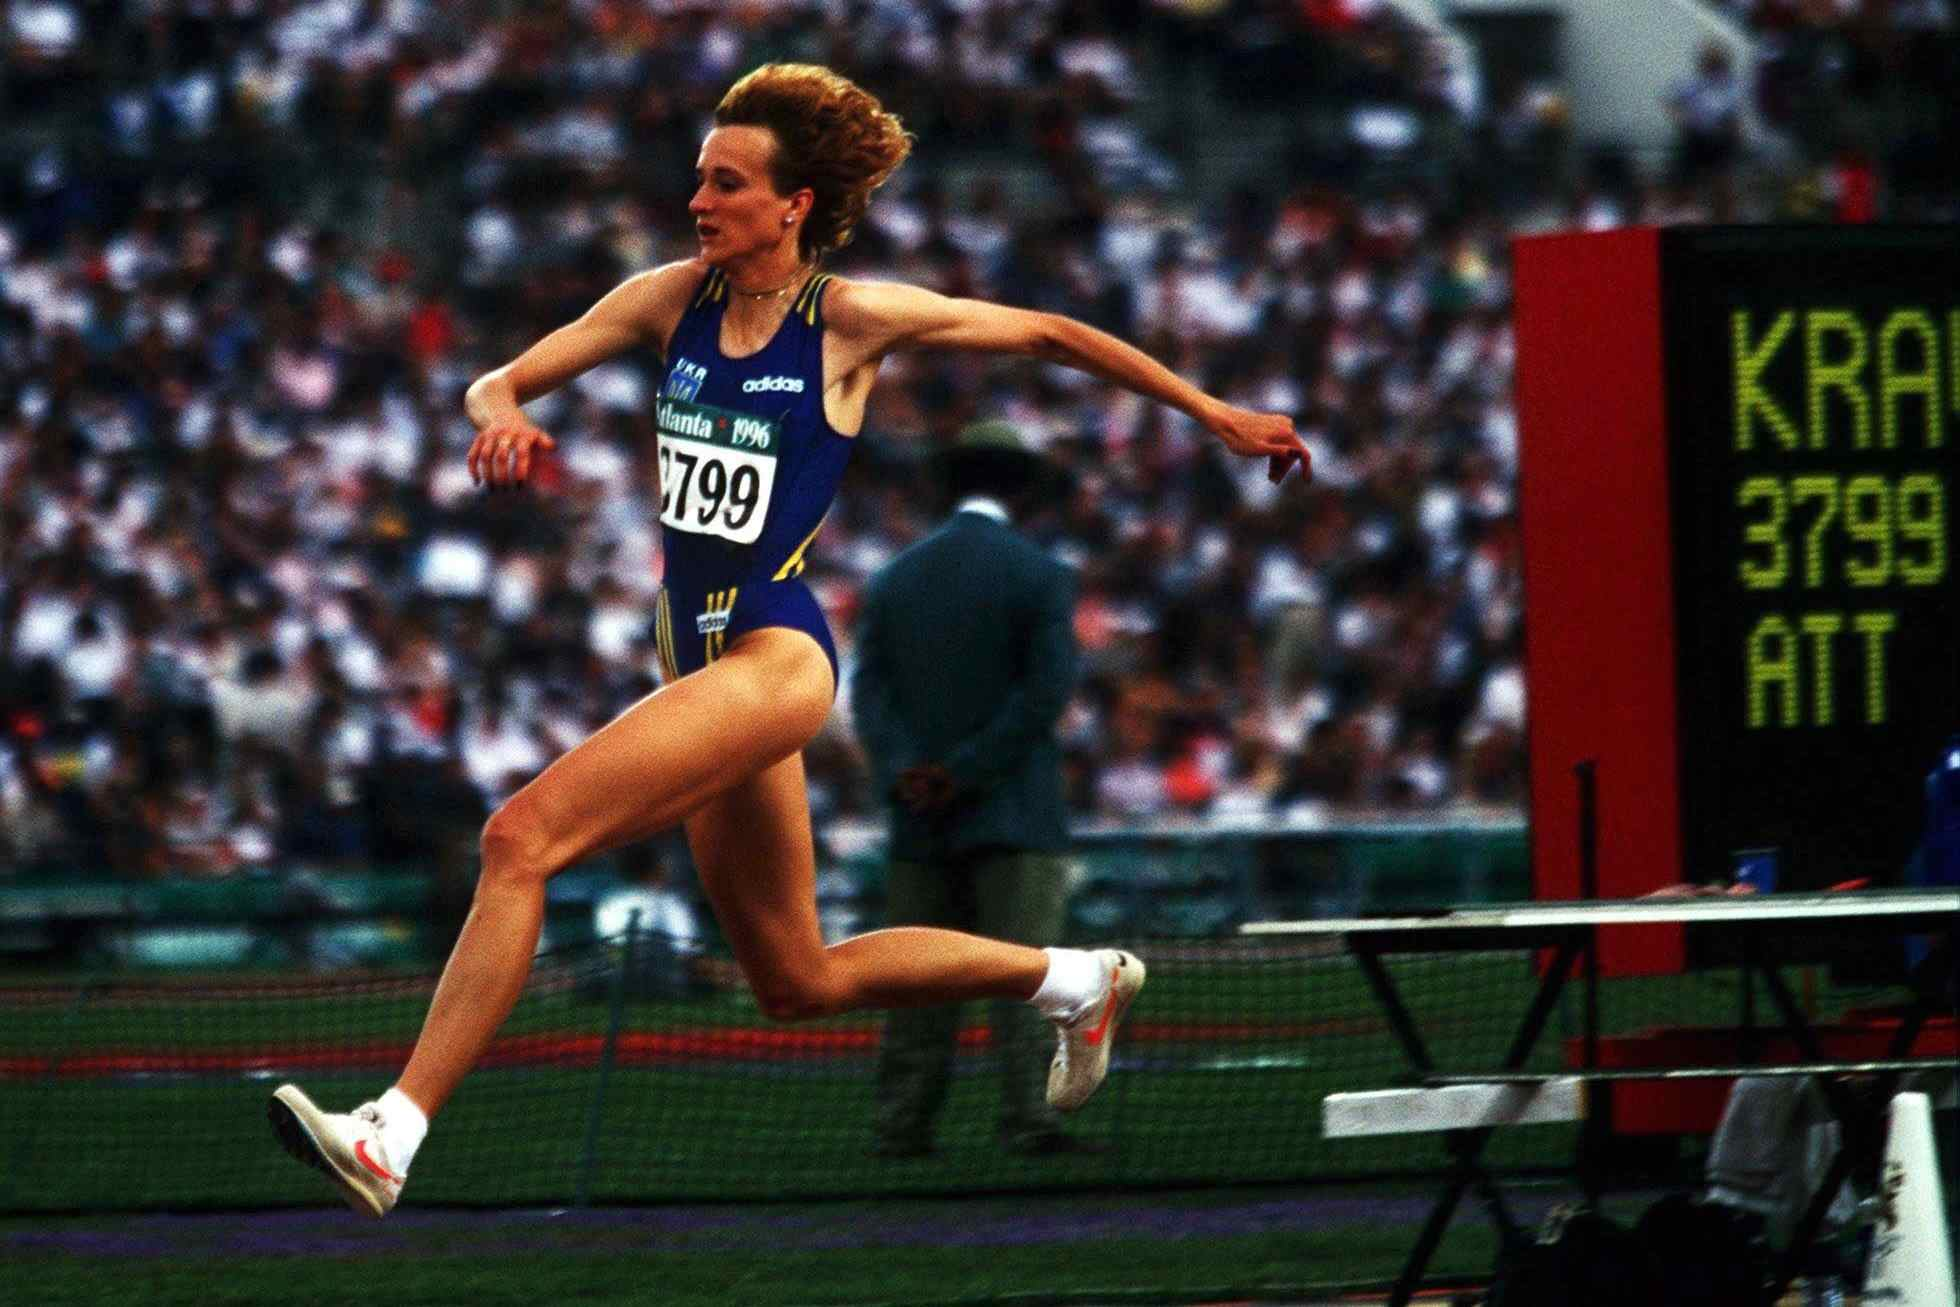 Inessa Kravets leaps to victory at the first Olympic women's triple jump competition, in 1996.